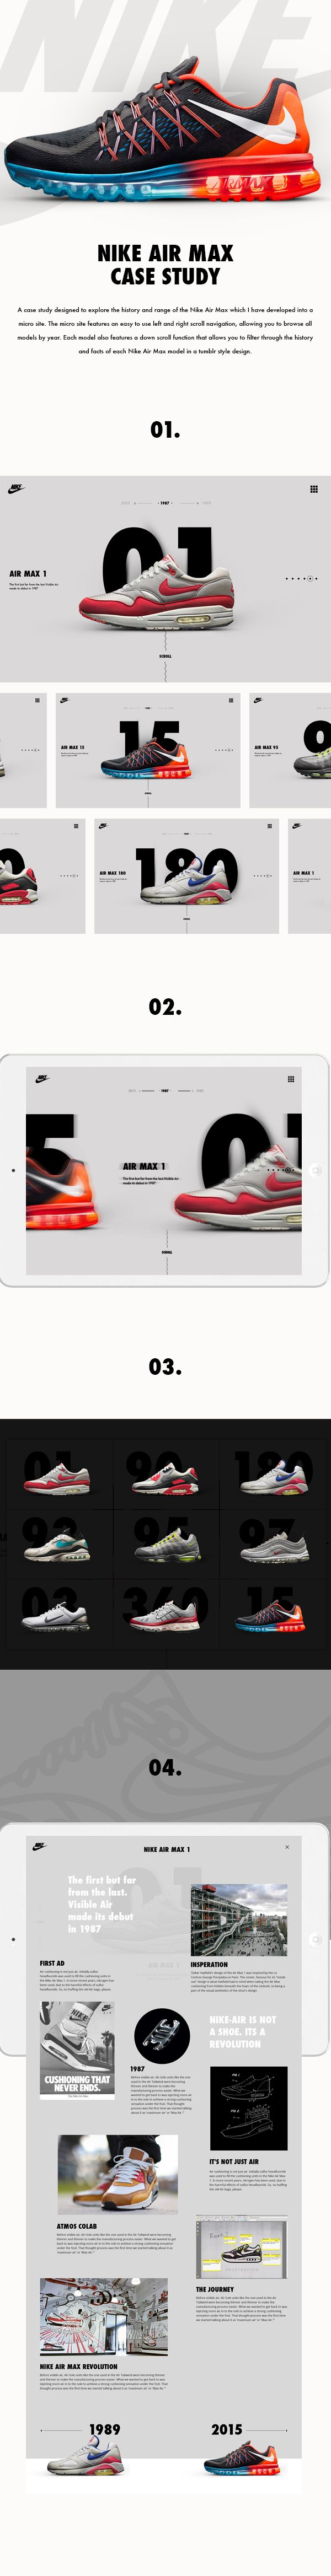 Nike Air Max Cool Website Designs